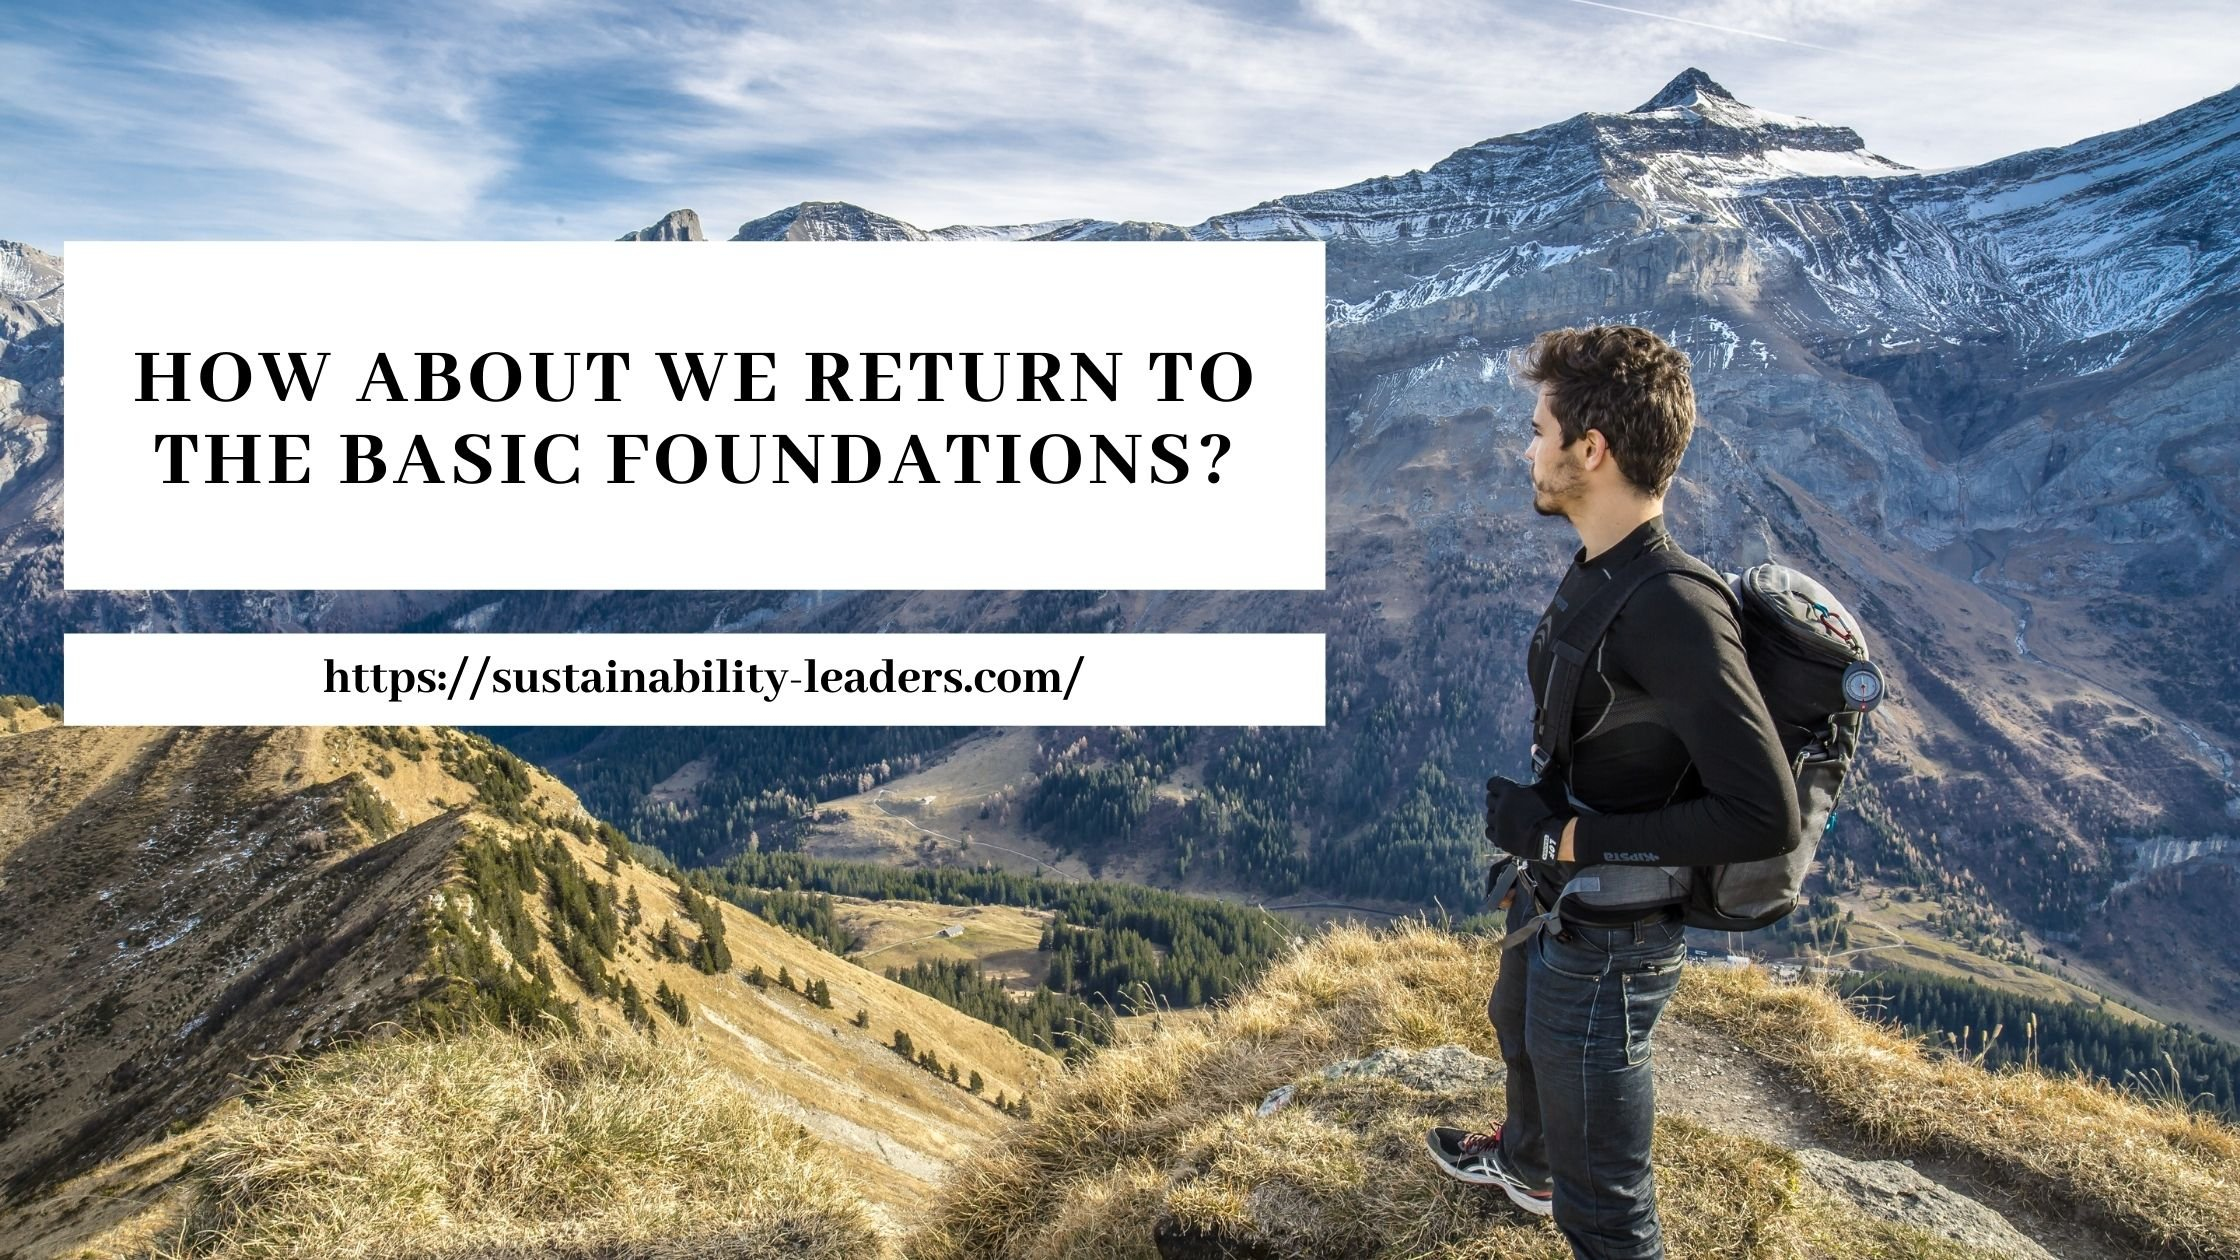 How About We Return To The Basic Foundations?